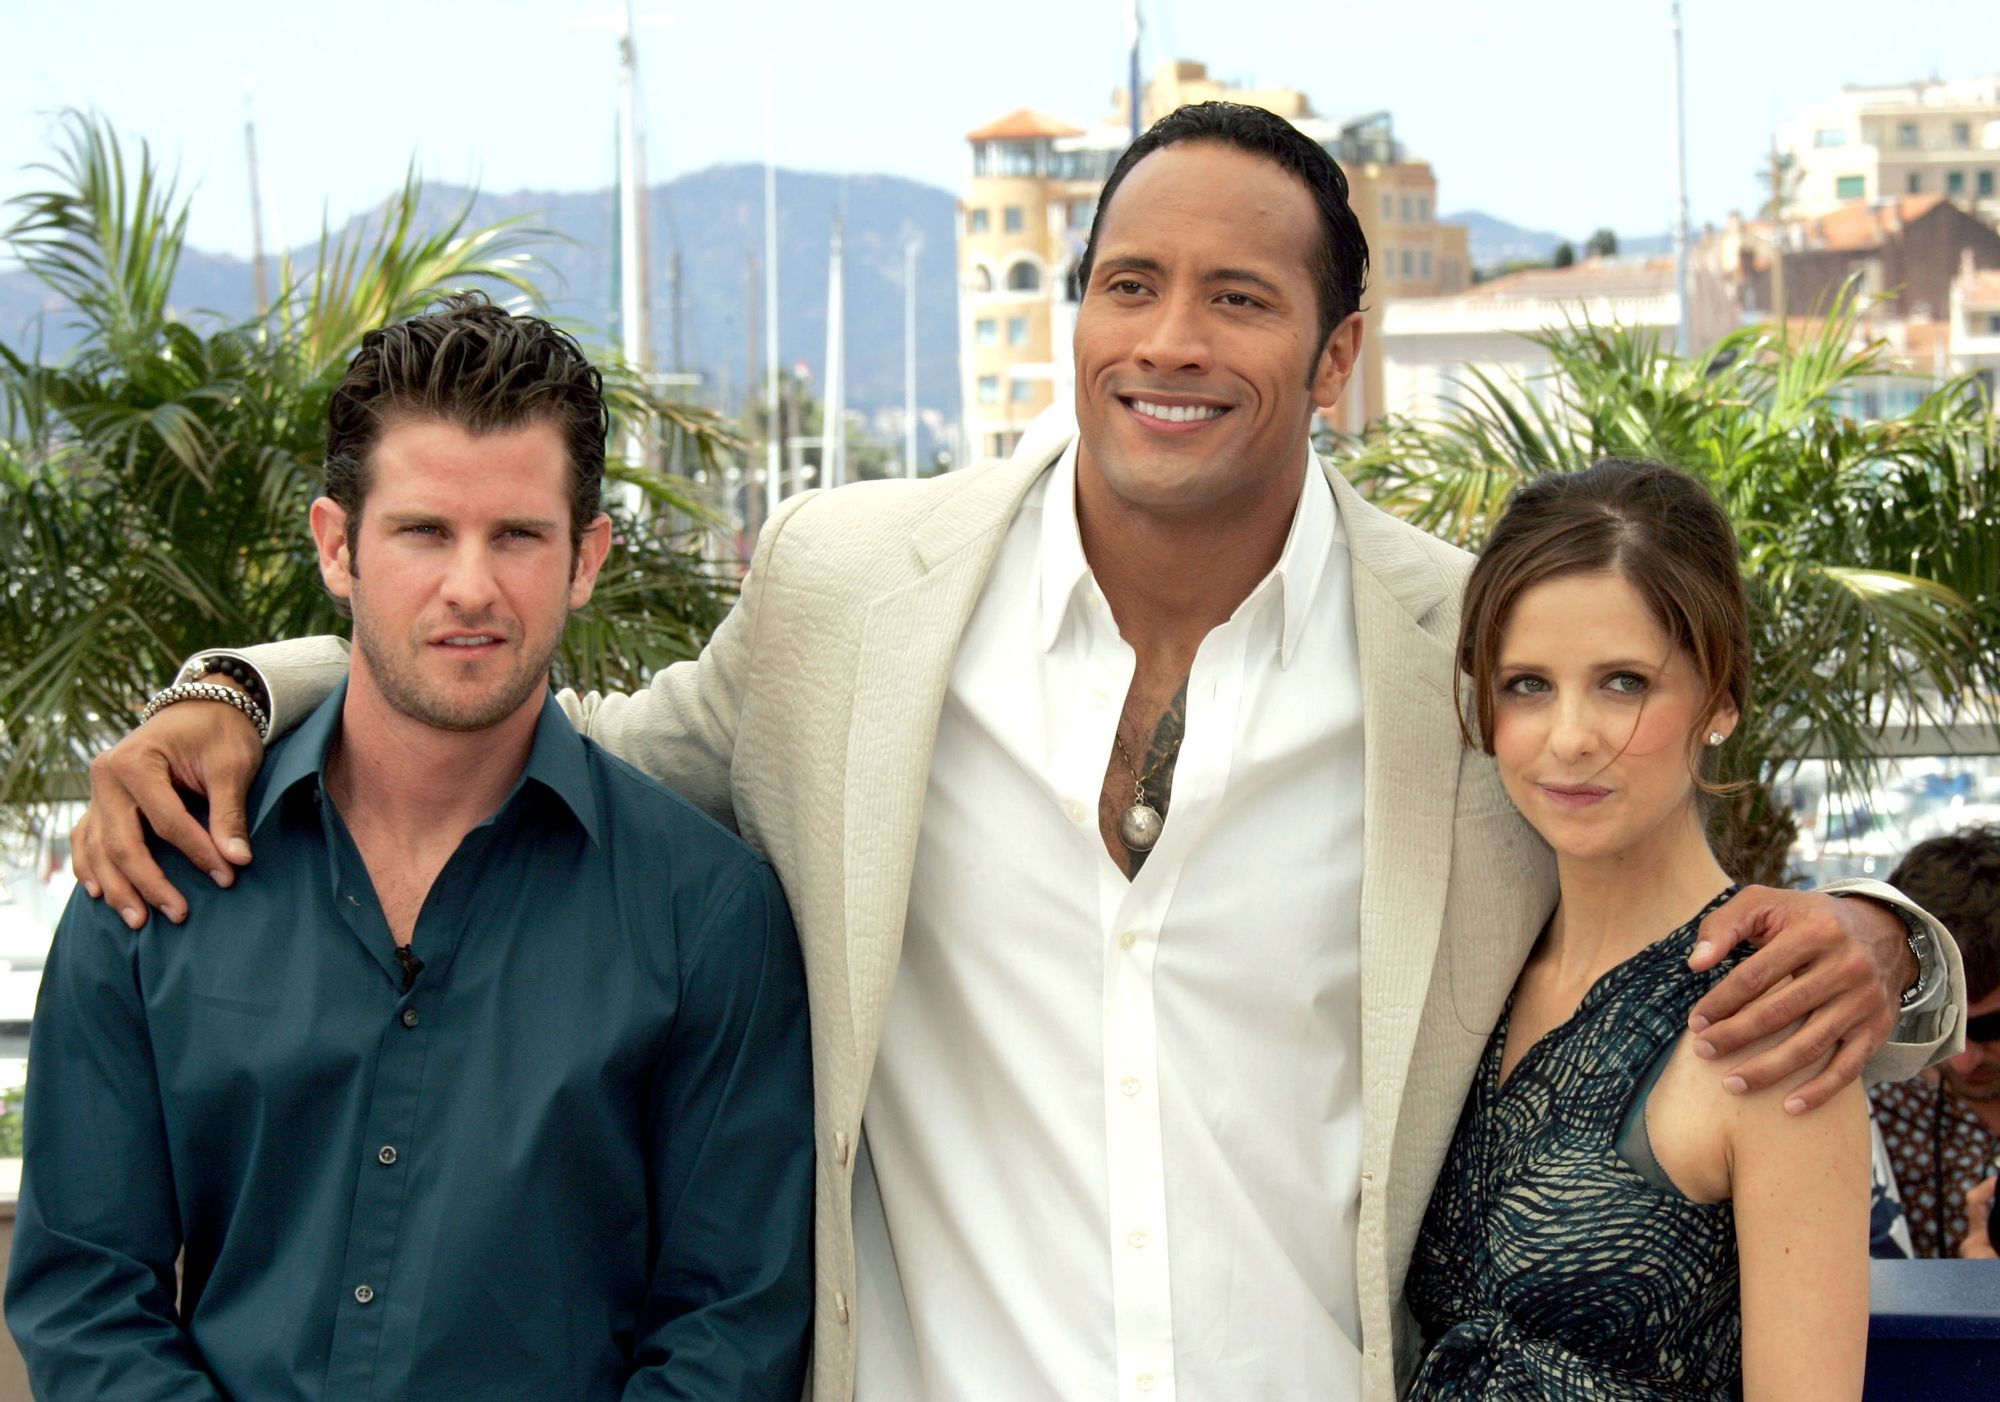 Image may contain Richard Kelly Human Person Clothing Apparel Dwayne Johnson Sarah Michelle Gellar Shirt and Suit